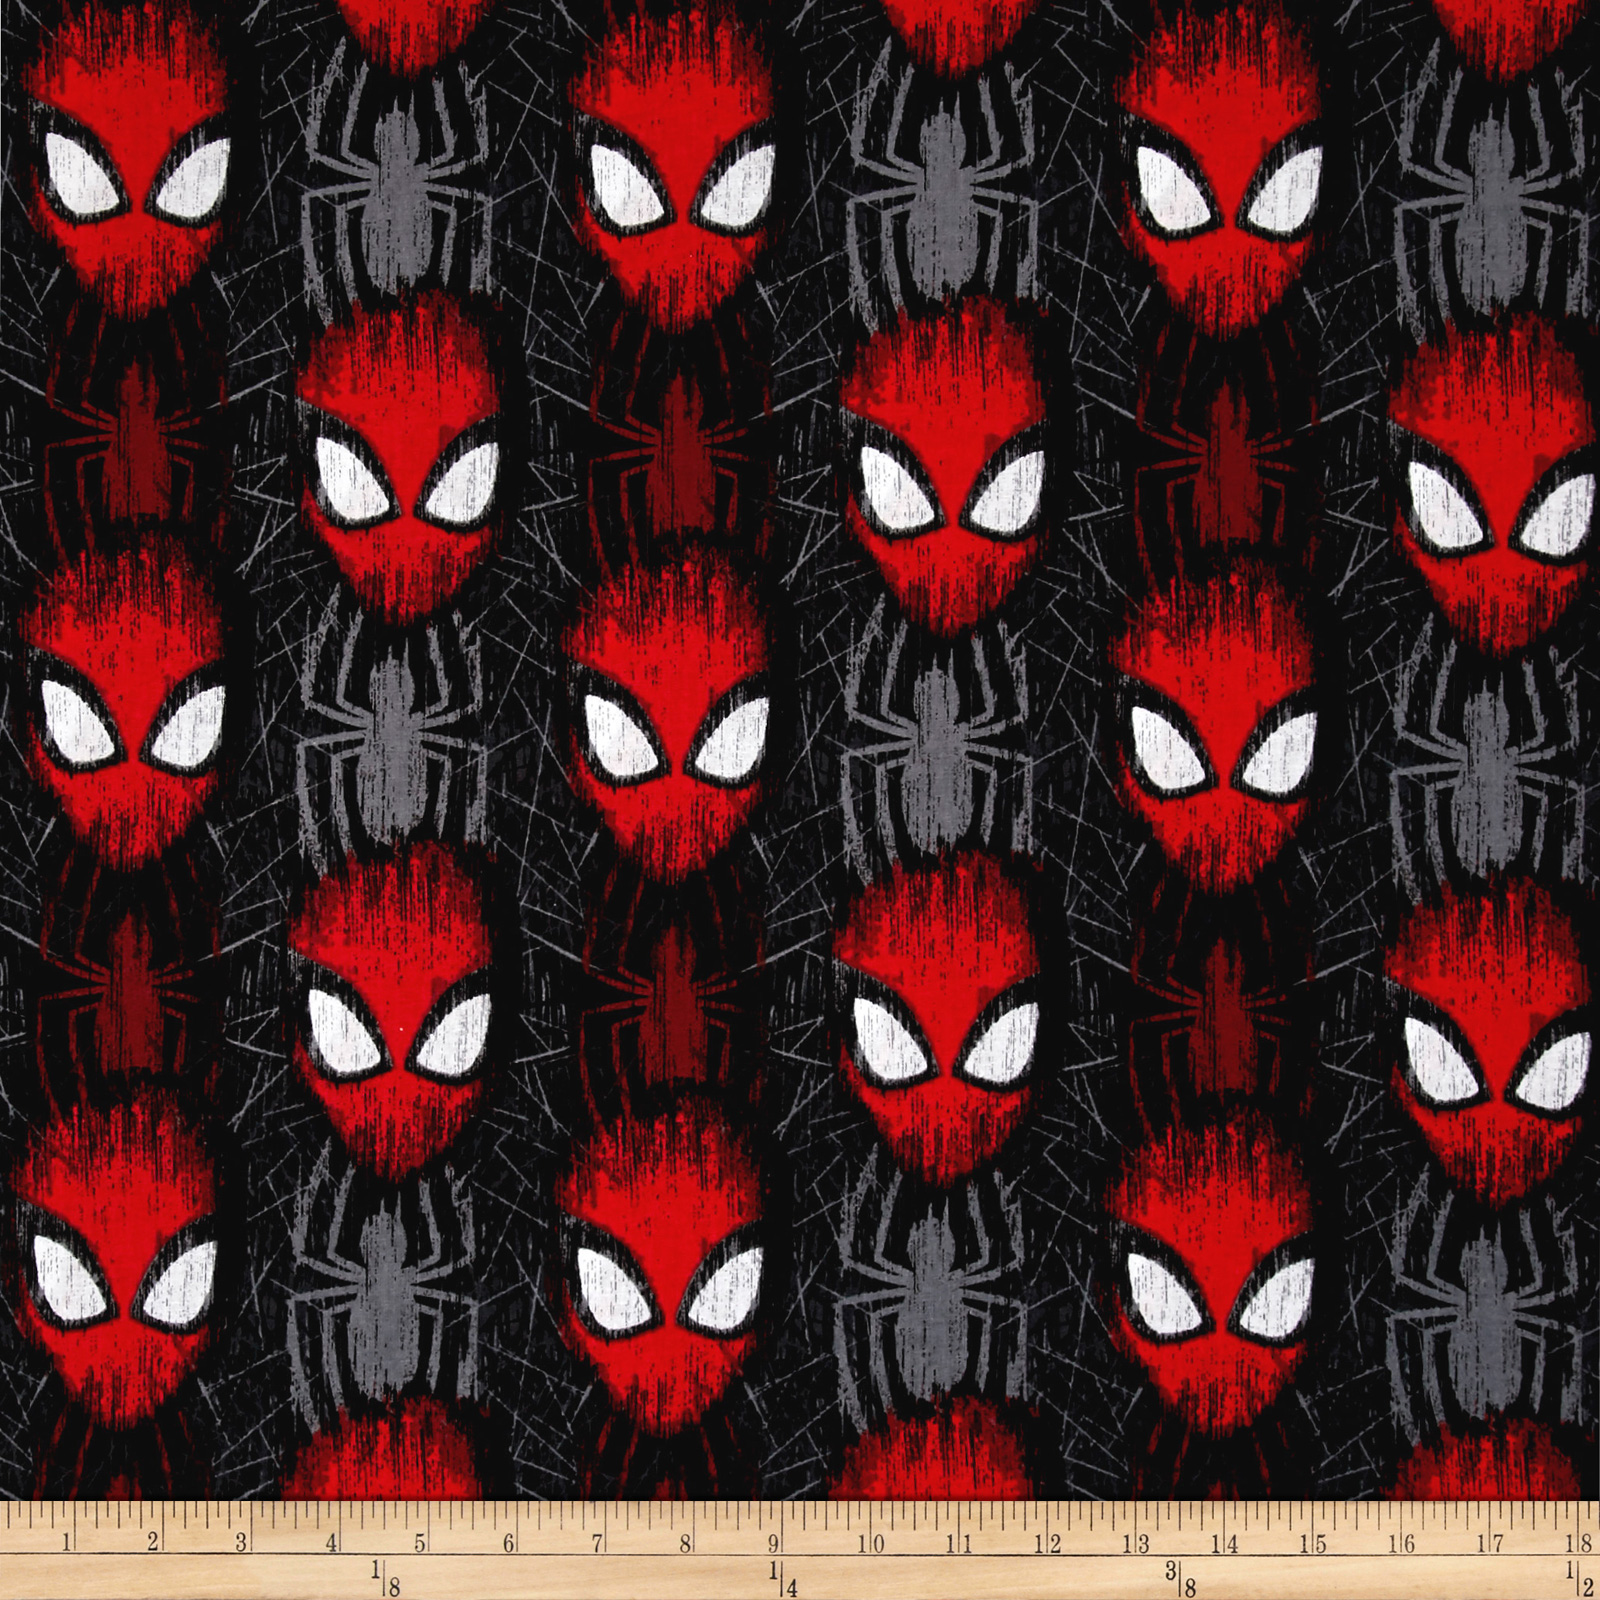 Marvel Spiderman Spider-Man Head Toss Black Fabric 0546157